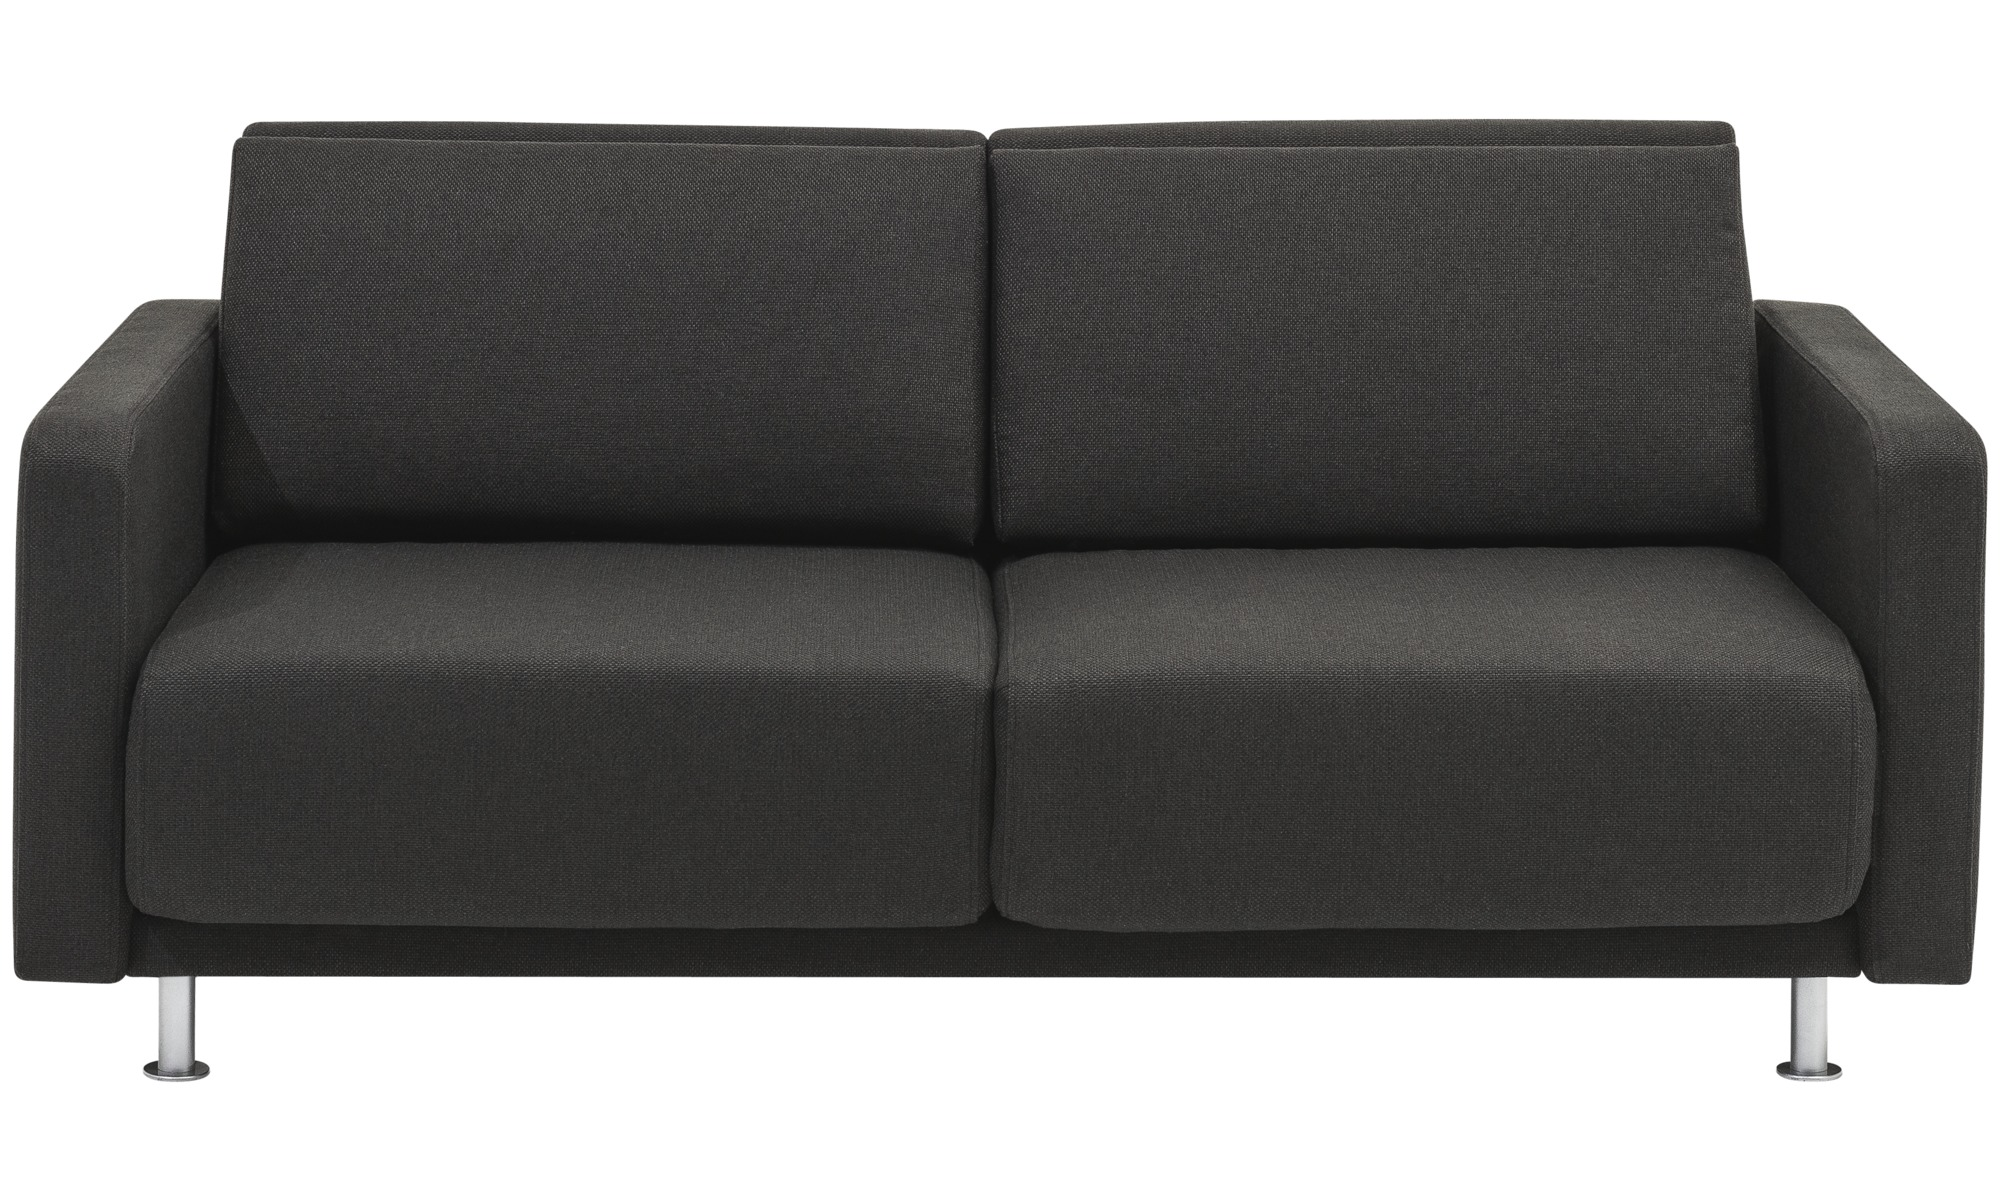 Balkarp Sofa Bed | Leather Sofa Bed Ikea | Ikea Karlstad Sofa Bed